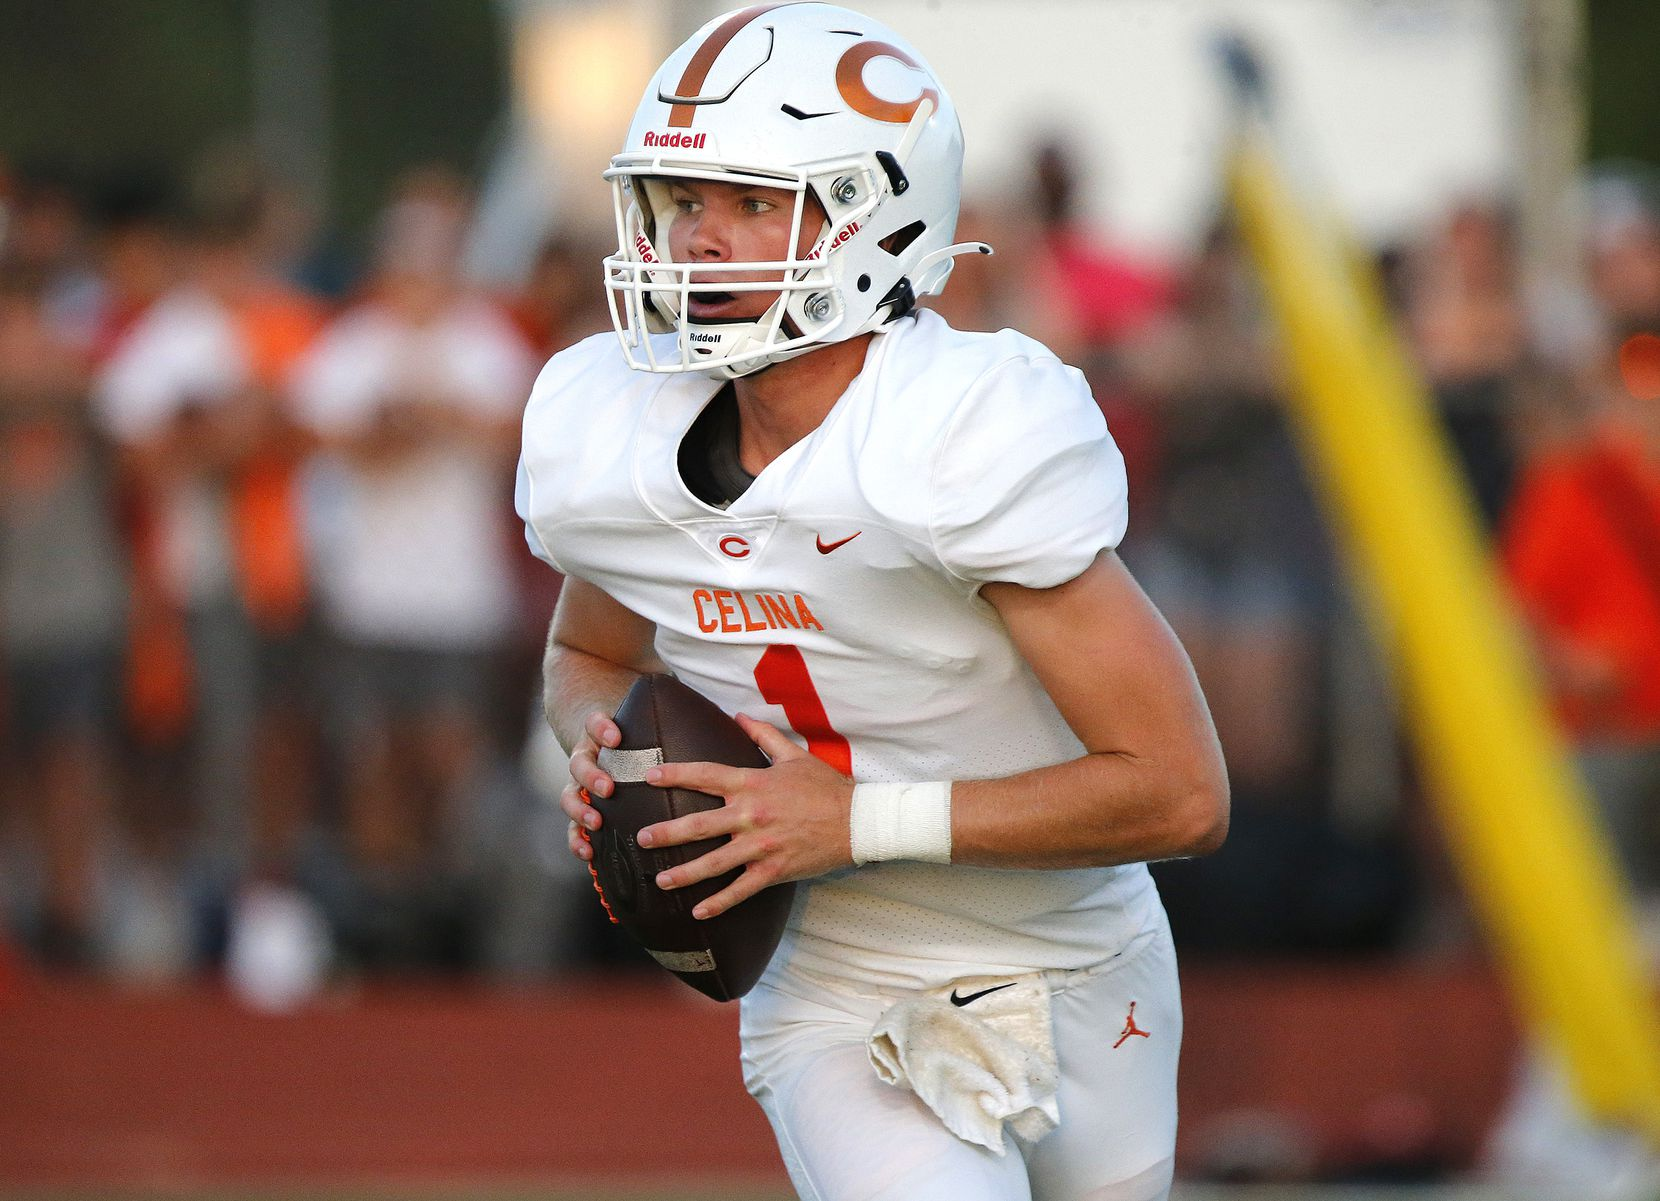 Celina High School quarterback Noah Bentley (1) rolls out to pass during the second half as Melissa High School hosted Celina High School at Cardinal Field in Melissa on Friday night, August 27, 2021. (Stewart F. House/Special Contributor)